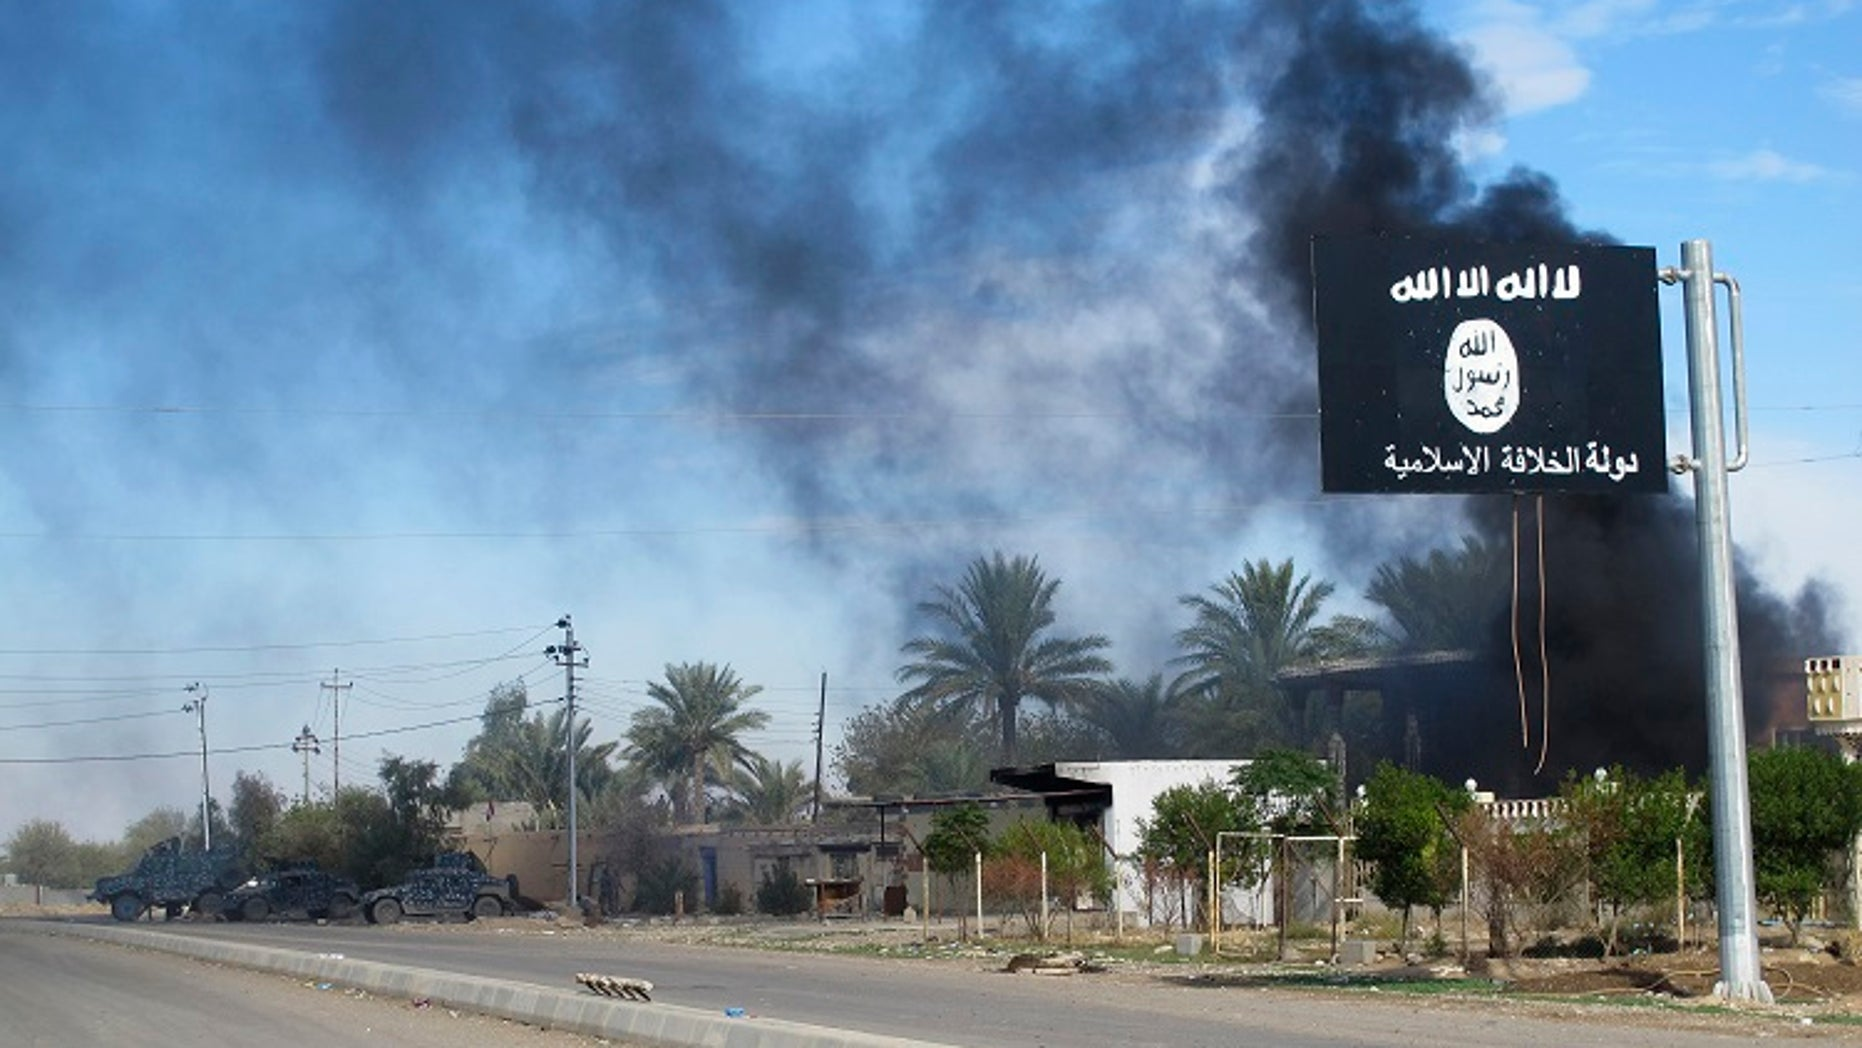 Smoke rises as ISIS is run out of towns north of Baghdad, Iraq.